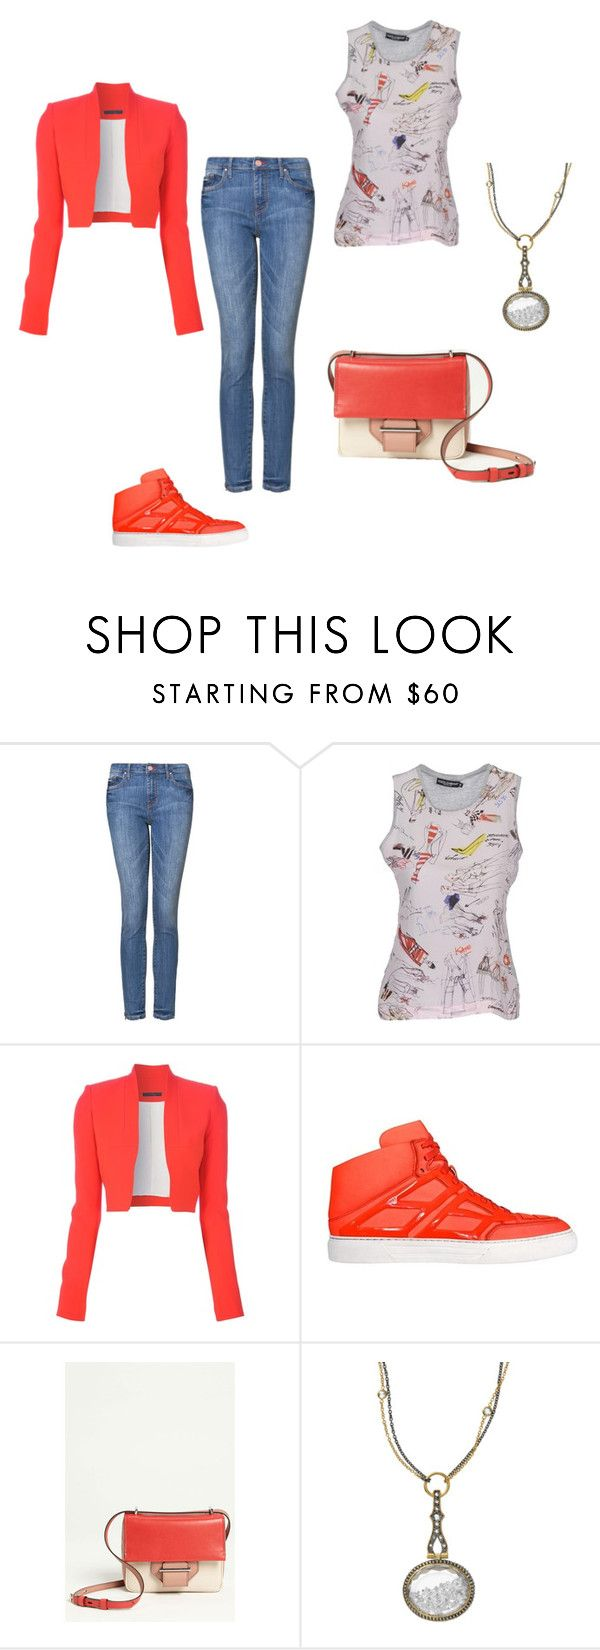 """""""SS - D - JEANS, TANK TOP, BOLERO JACKET, SNEAKERS - DENIM, WHITE, RED"""" by laliquemurano on Polyvore featuring MANGO, Dolce&Gabbana, Victoria Beckham, Alejandro Ingelmo, Reed Krakoff and Moritz Glik"""